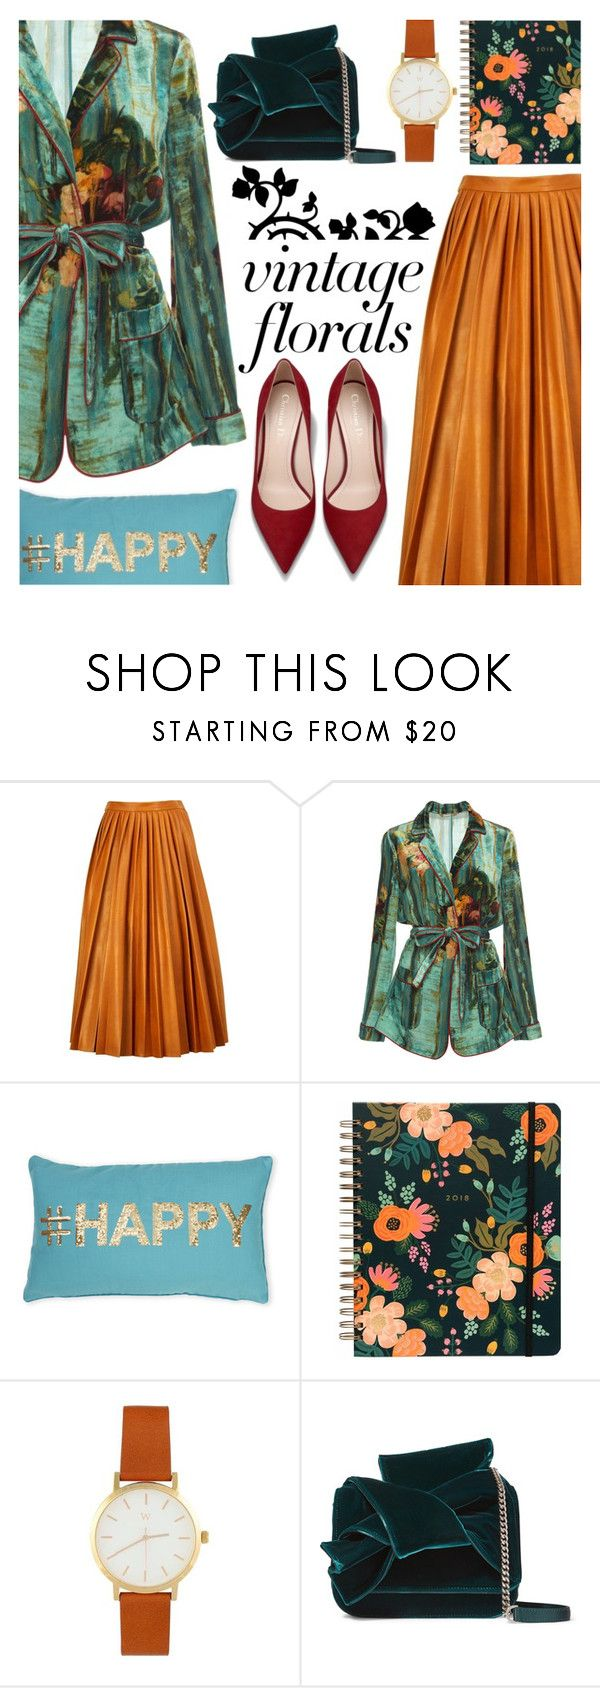 """Vintage Florals"" by ana3blue on Polyvore featuring By Malene Birger, Alberta Ferretti, Thro, N°21 and vintage"